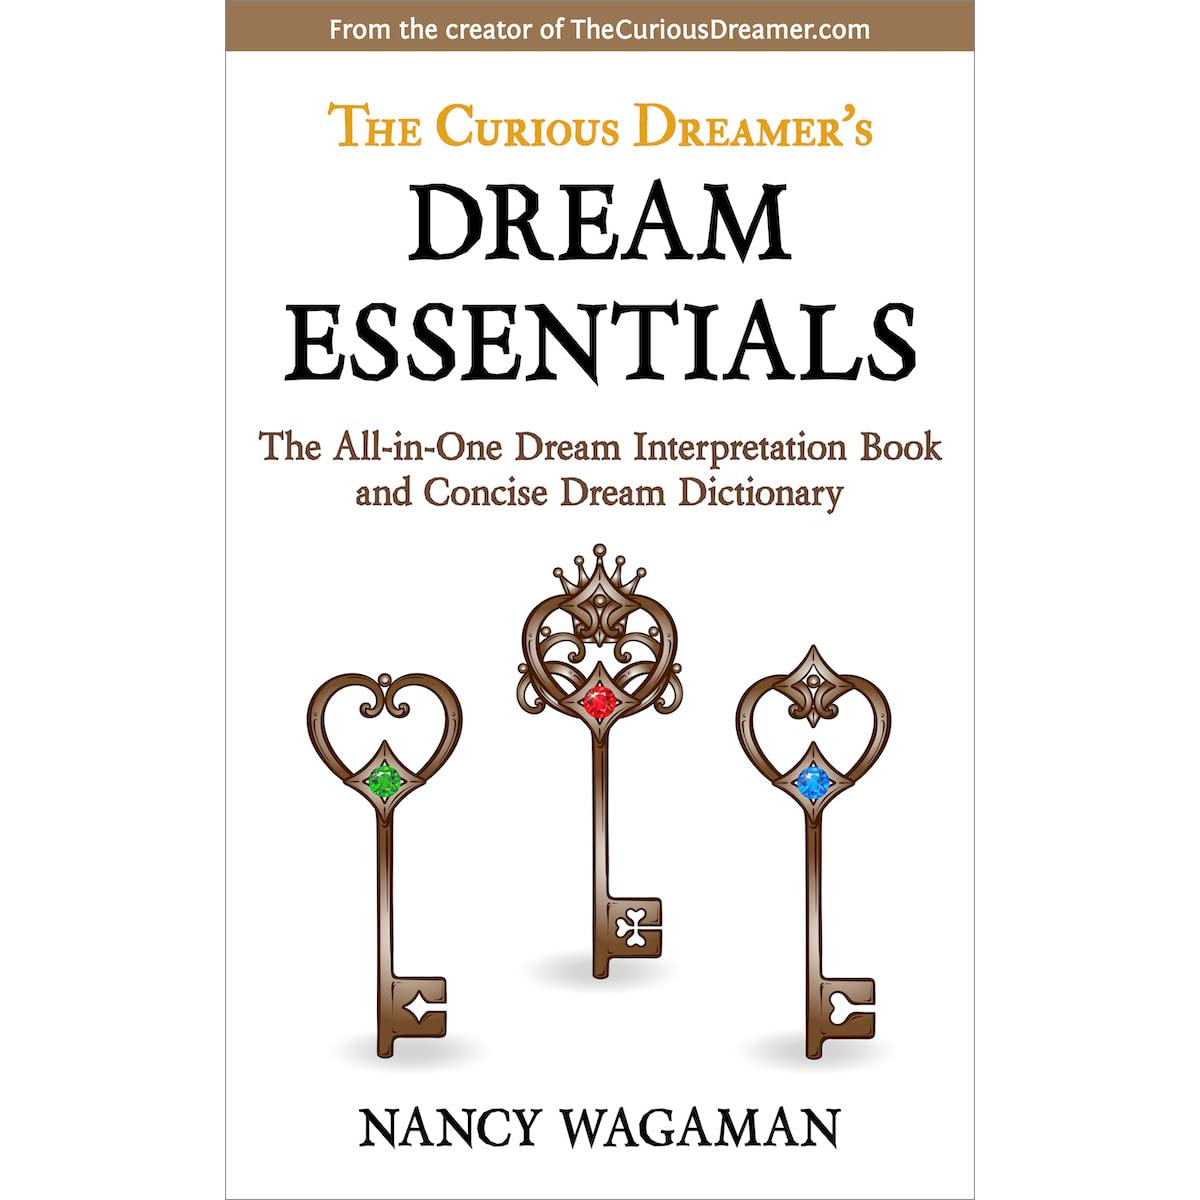 The Curious Dreamer's Dream Essentials by Nancy Wagaman